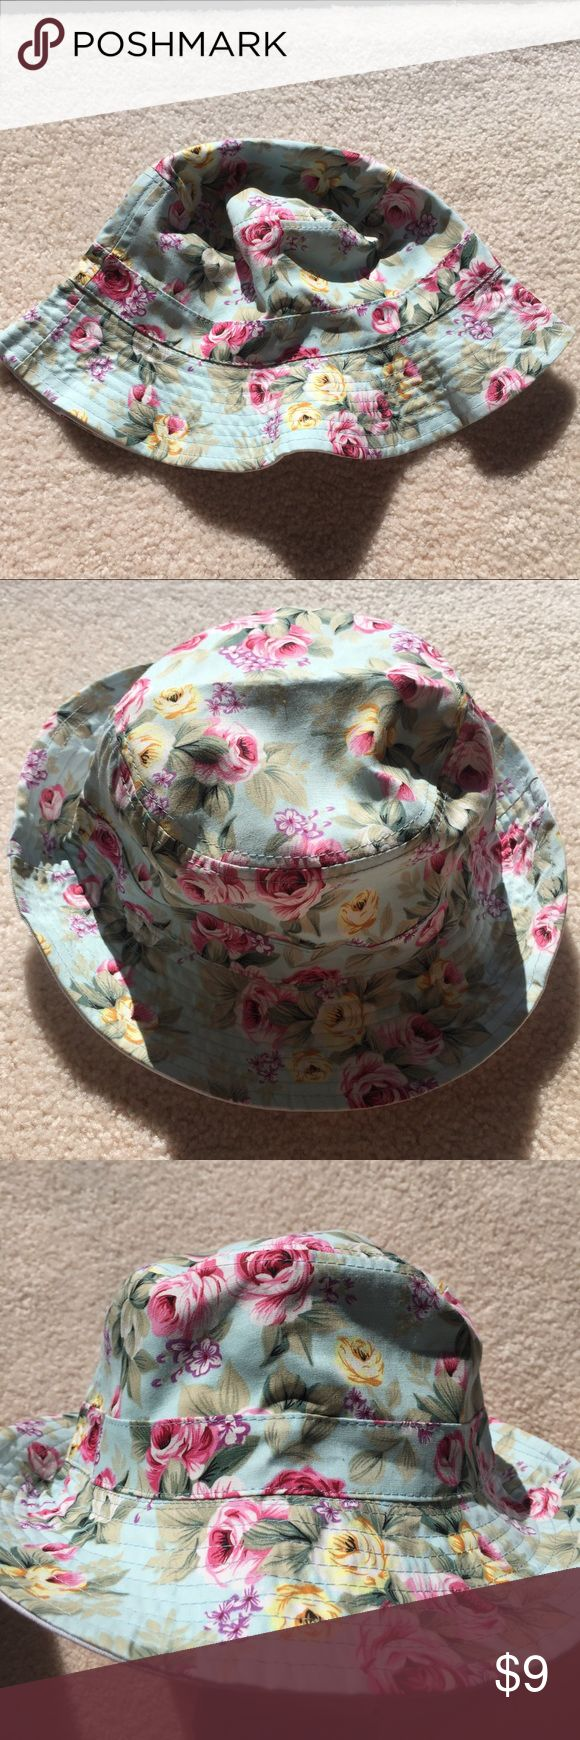 👒 Reversible Floral Bucket Hat This bucket hat can be worn two ways keeping it a fun accessory, NWOT, never worn Accessories Hats